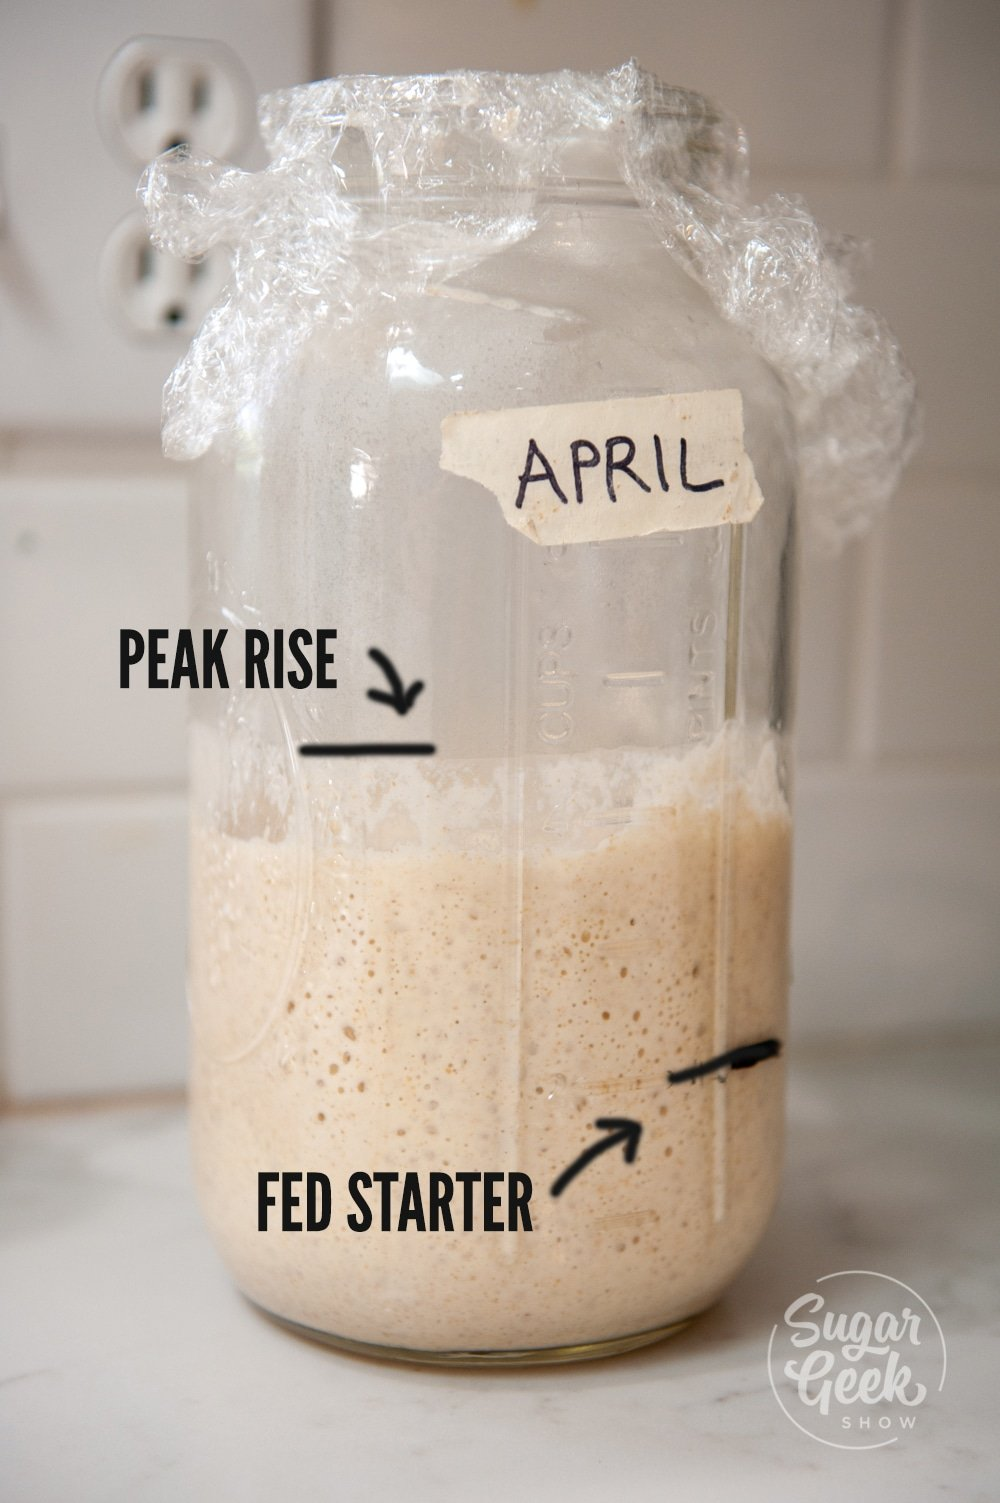 jar of sourdough starter with lines drawn on front to indicate peak rise